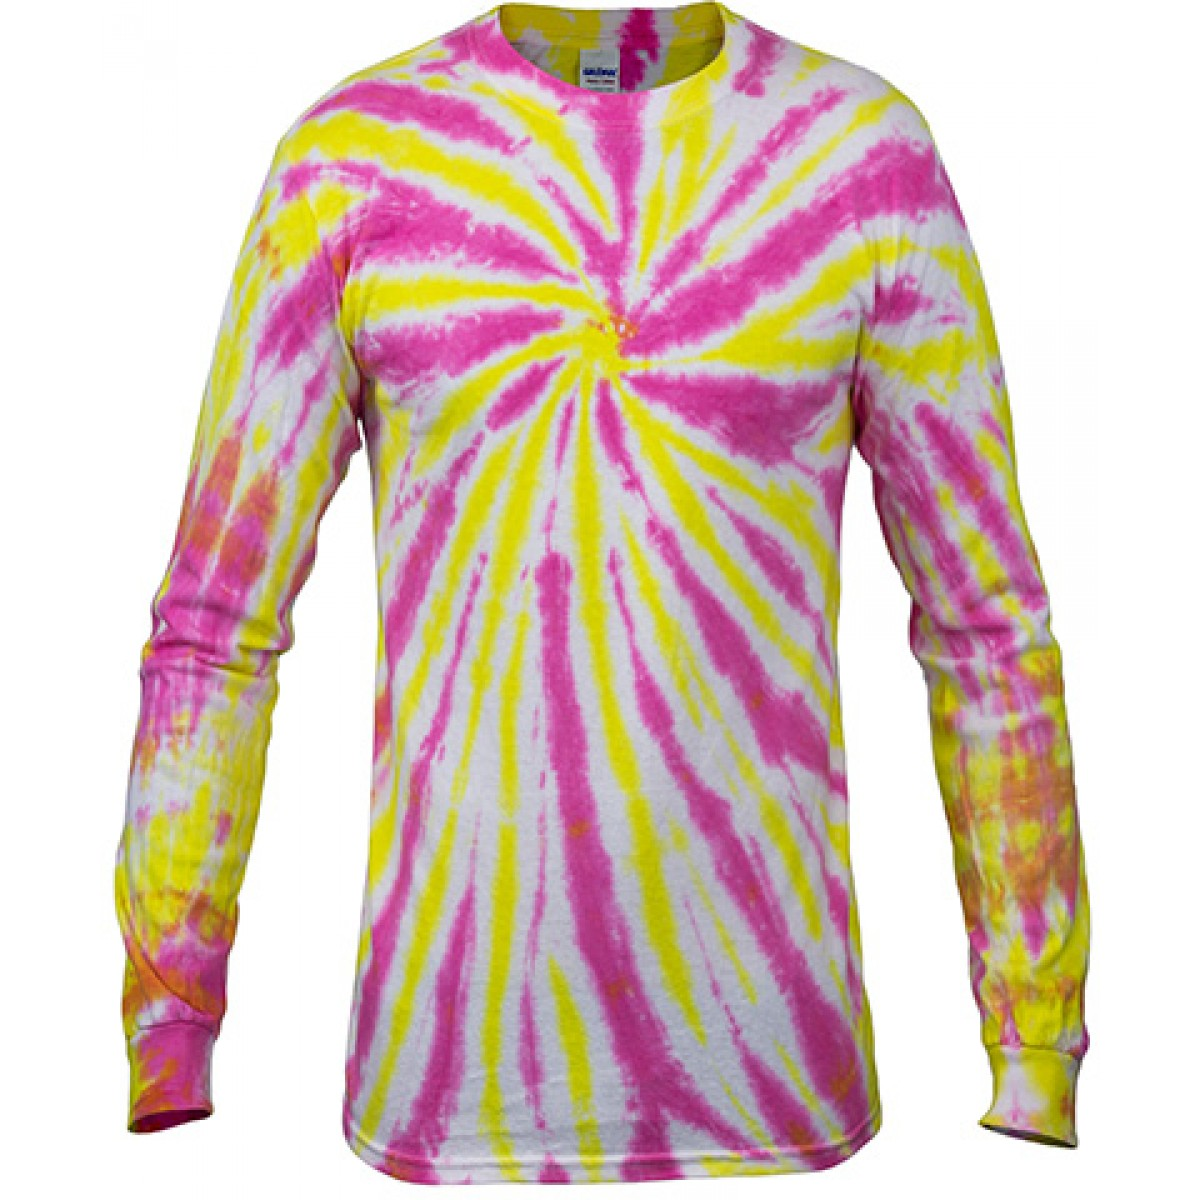 Multi Color Tie-Dye Long Sleeve Shirt -Pink-XL